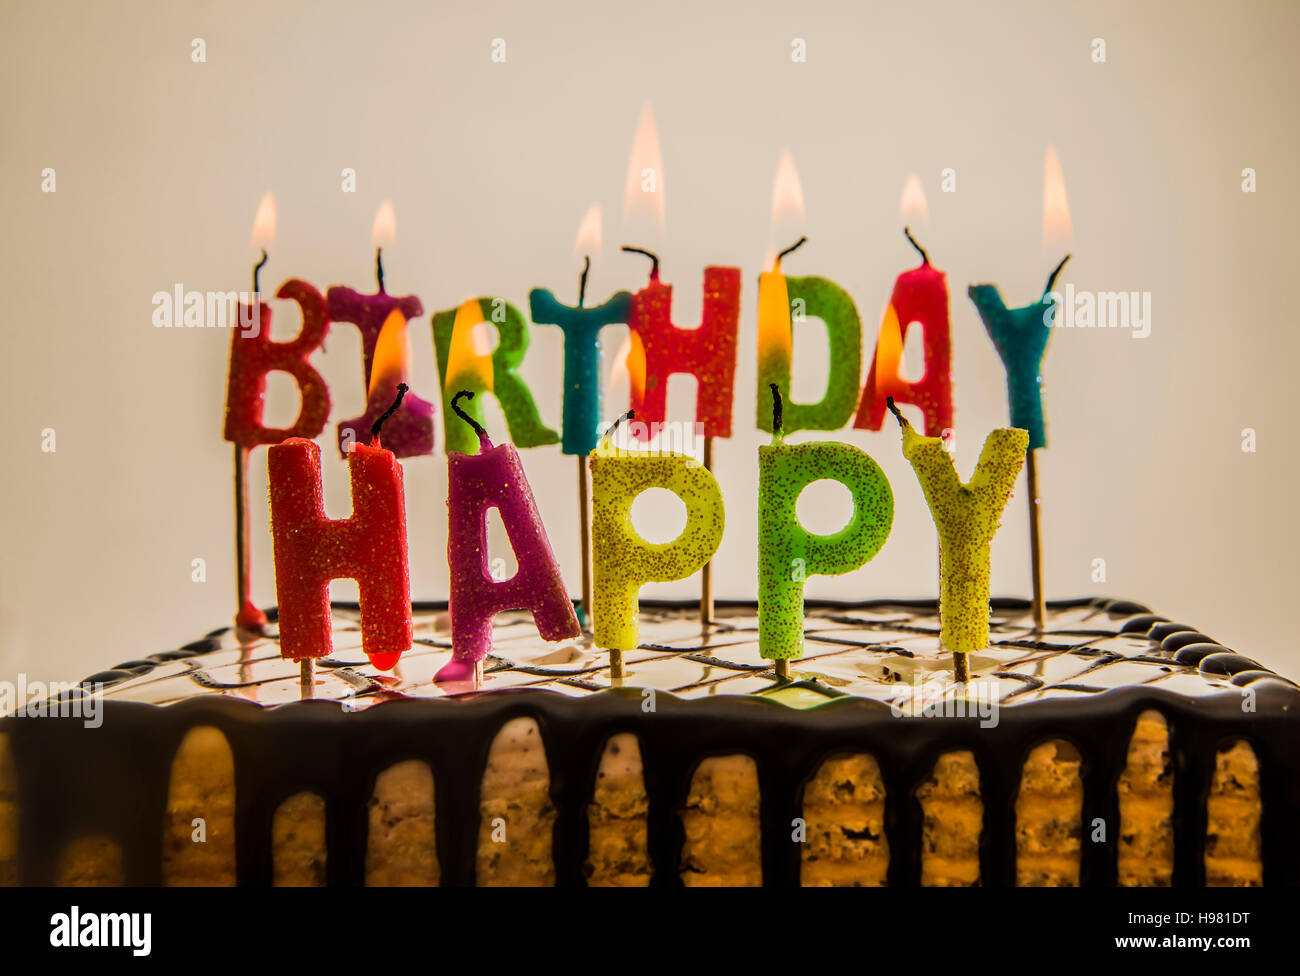 Happy Birthday Candles Burning On Chocolate Cake Isolated On White